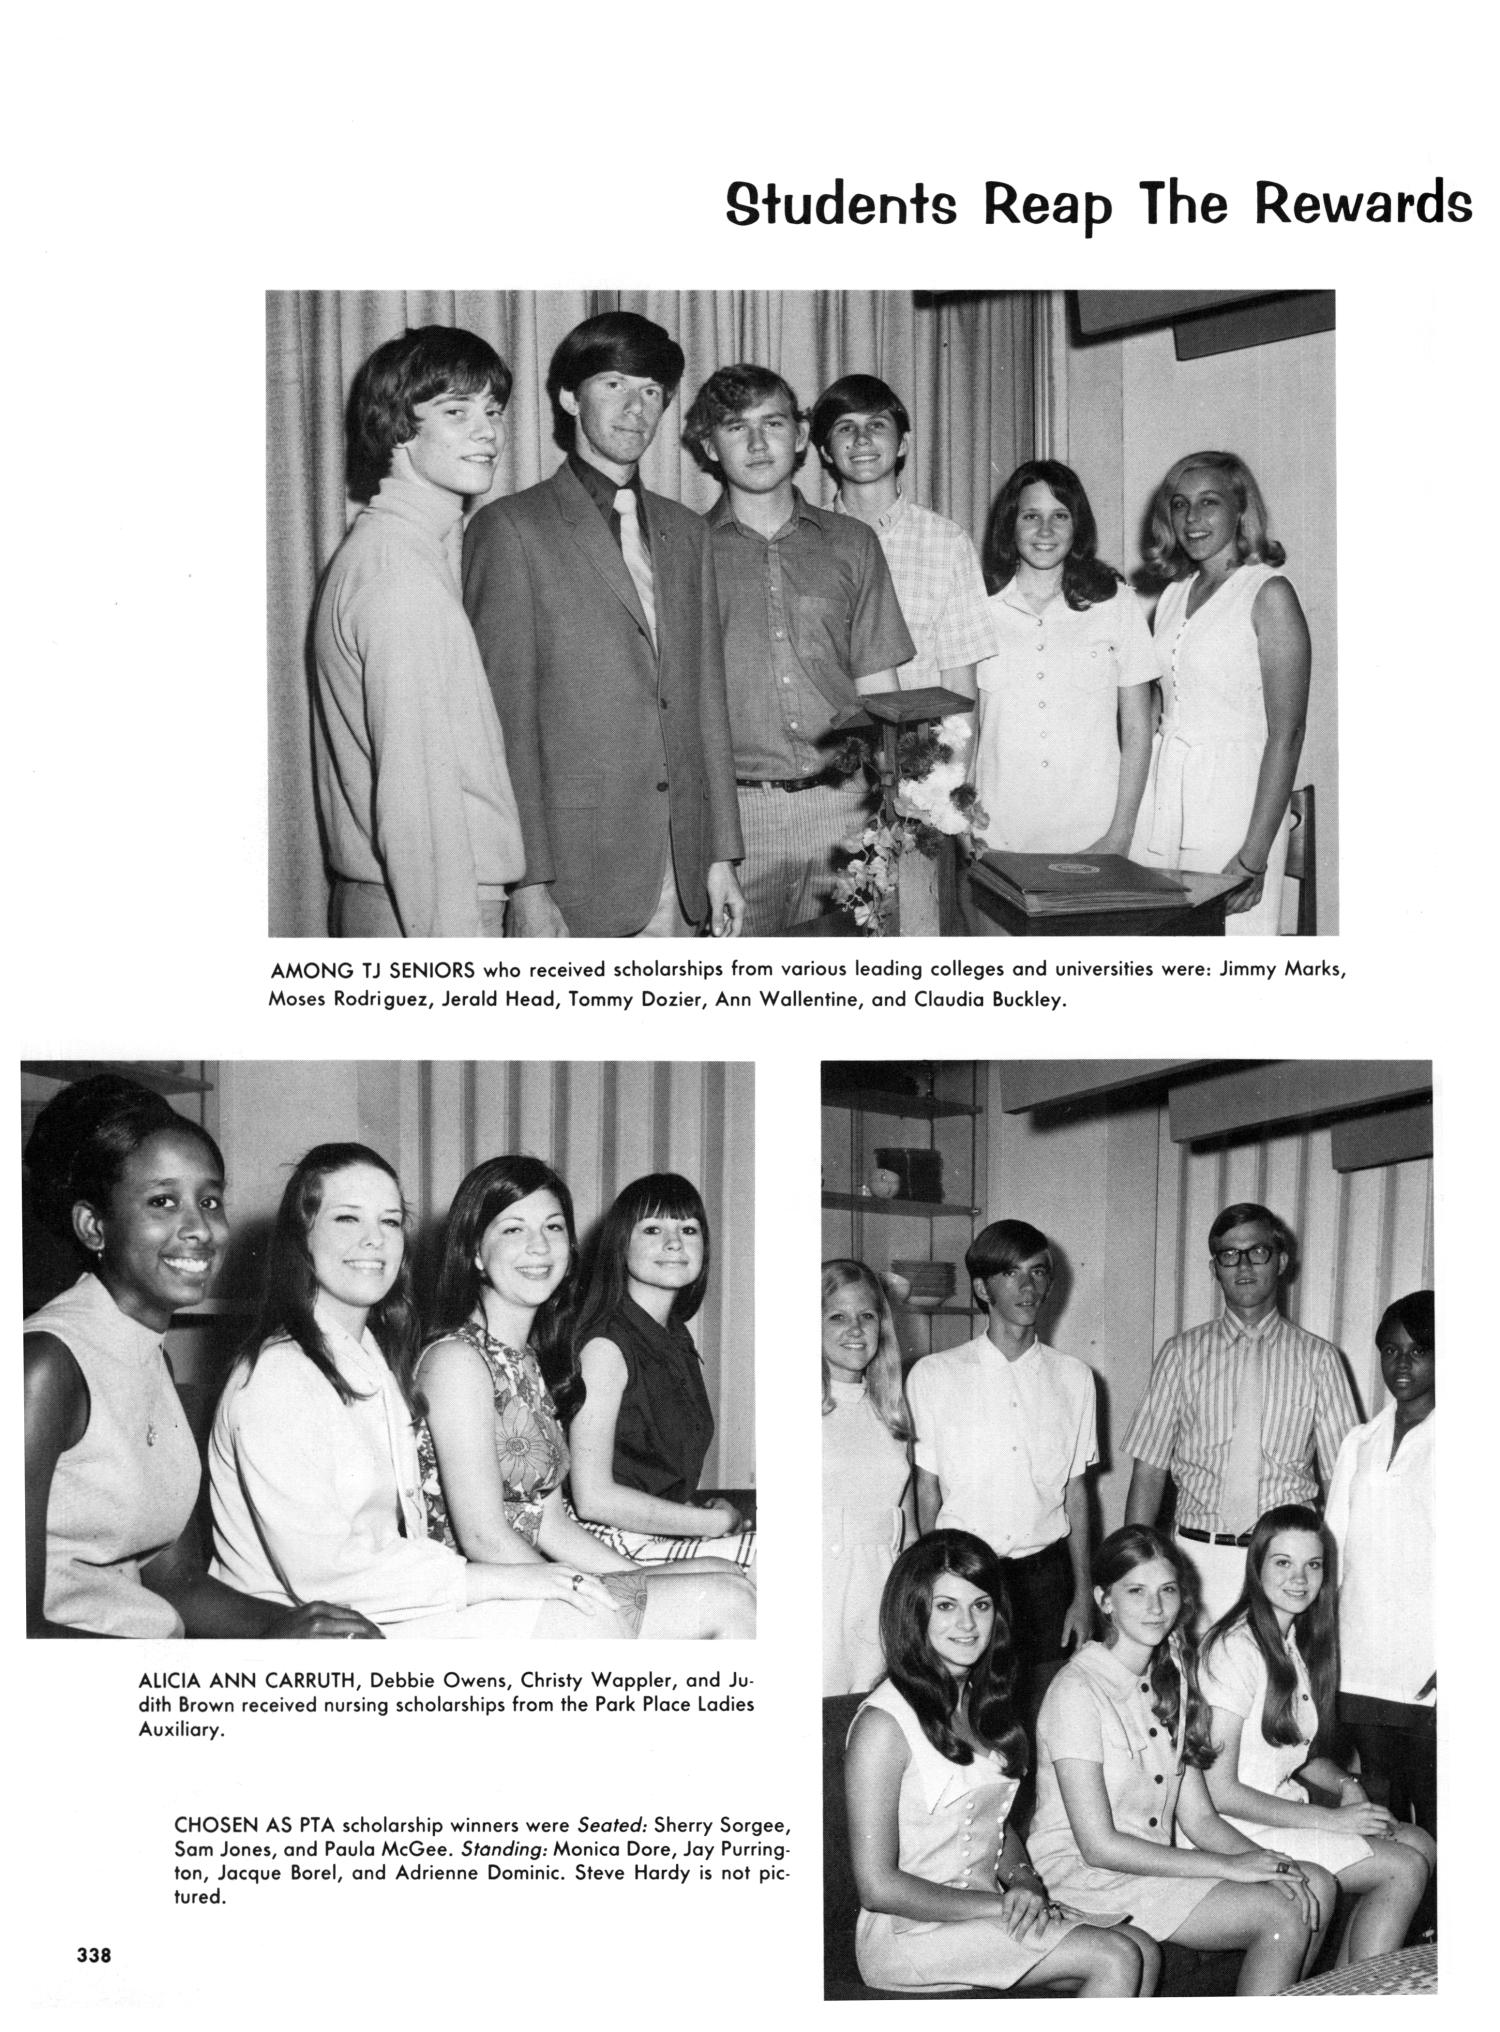 The aerie yearbook of university of north texas 1995 page 44 unt - The Yellow Jacket Yearbook Of Thomas Jefferson High School 1971 Page 338 Live Facebook Stream Of The University Of North Texas